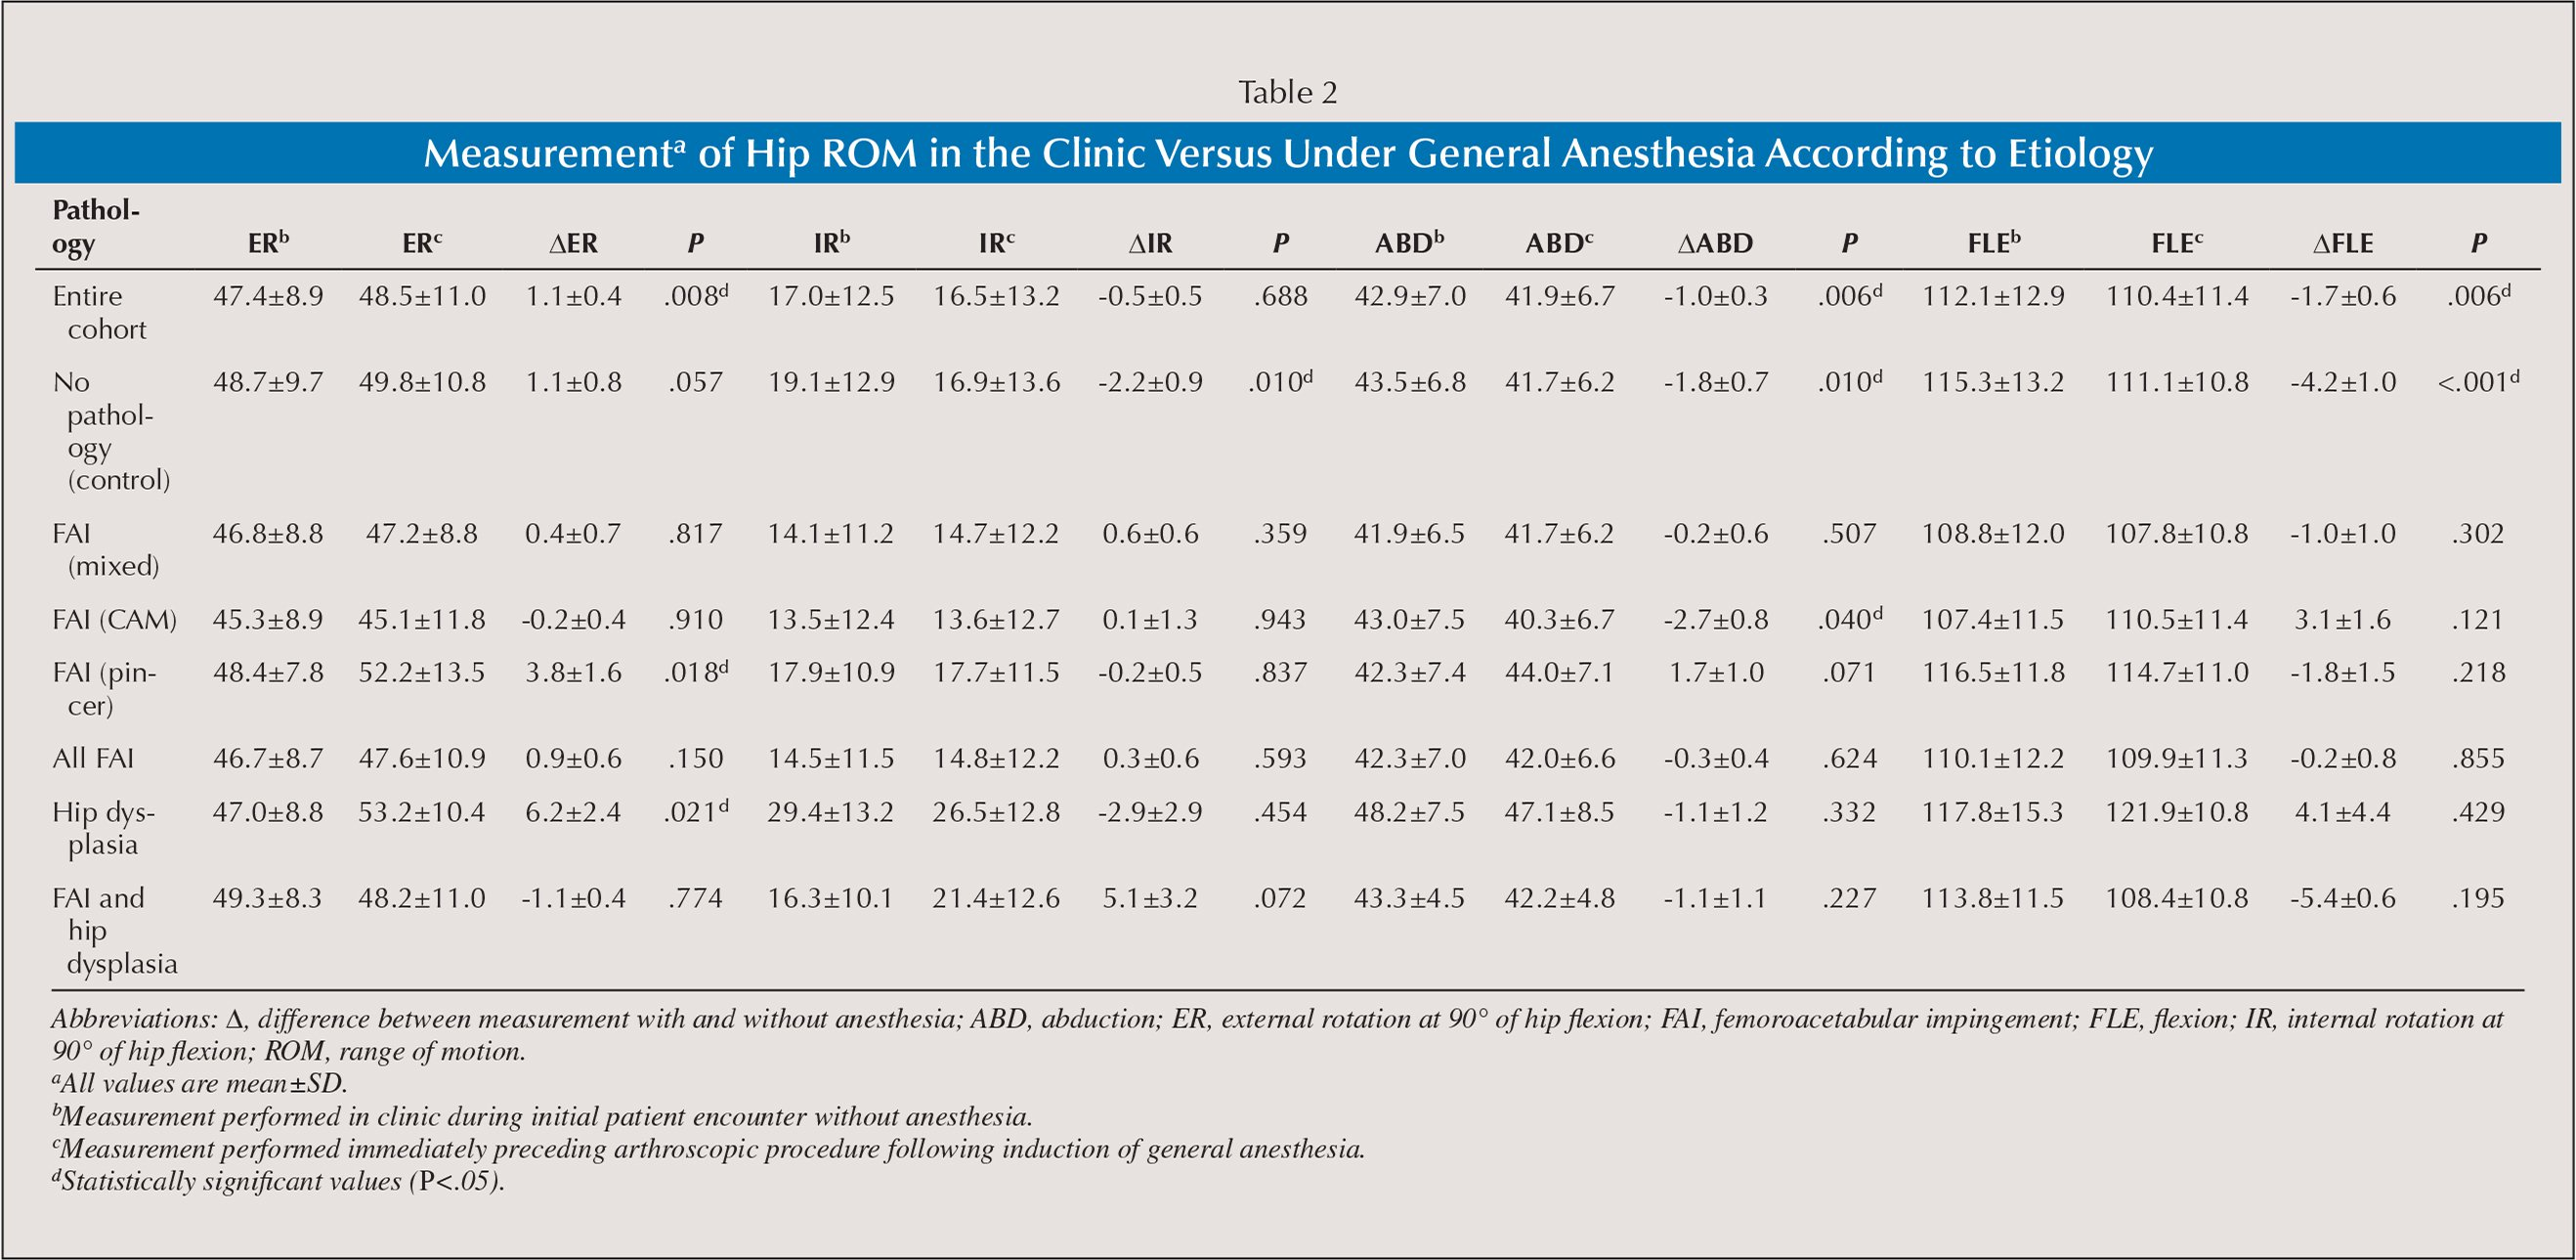 Measurementa of Hip ROM in the Clinic Versus Under General Anesthesia According to Etiology